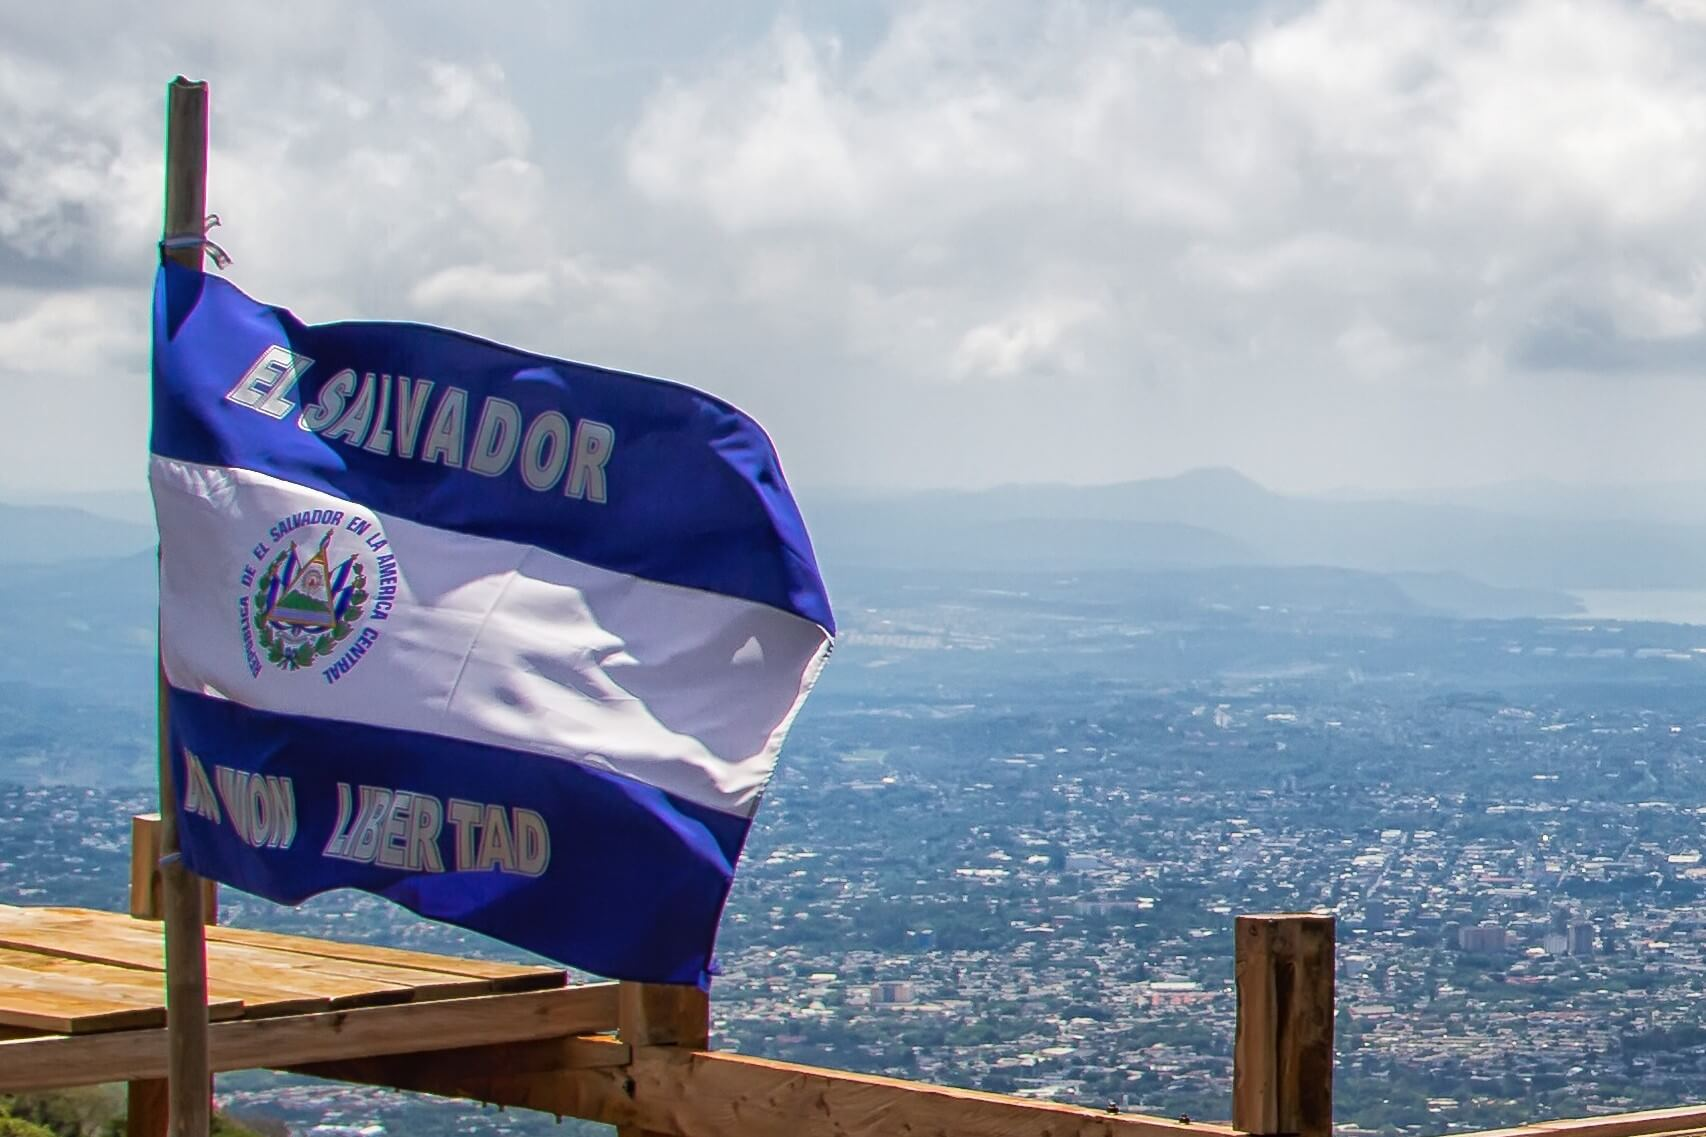 Economists Want El Salvador Bitcoin Law Repealed, but President Wins Key Ally